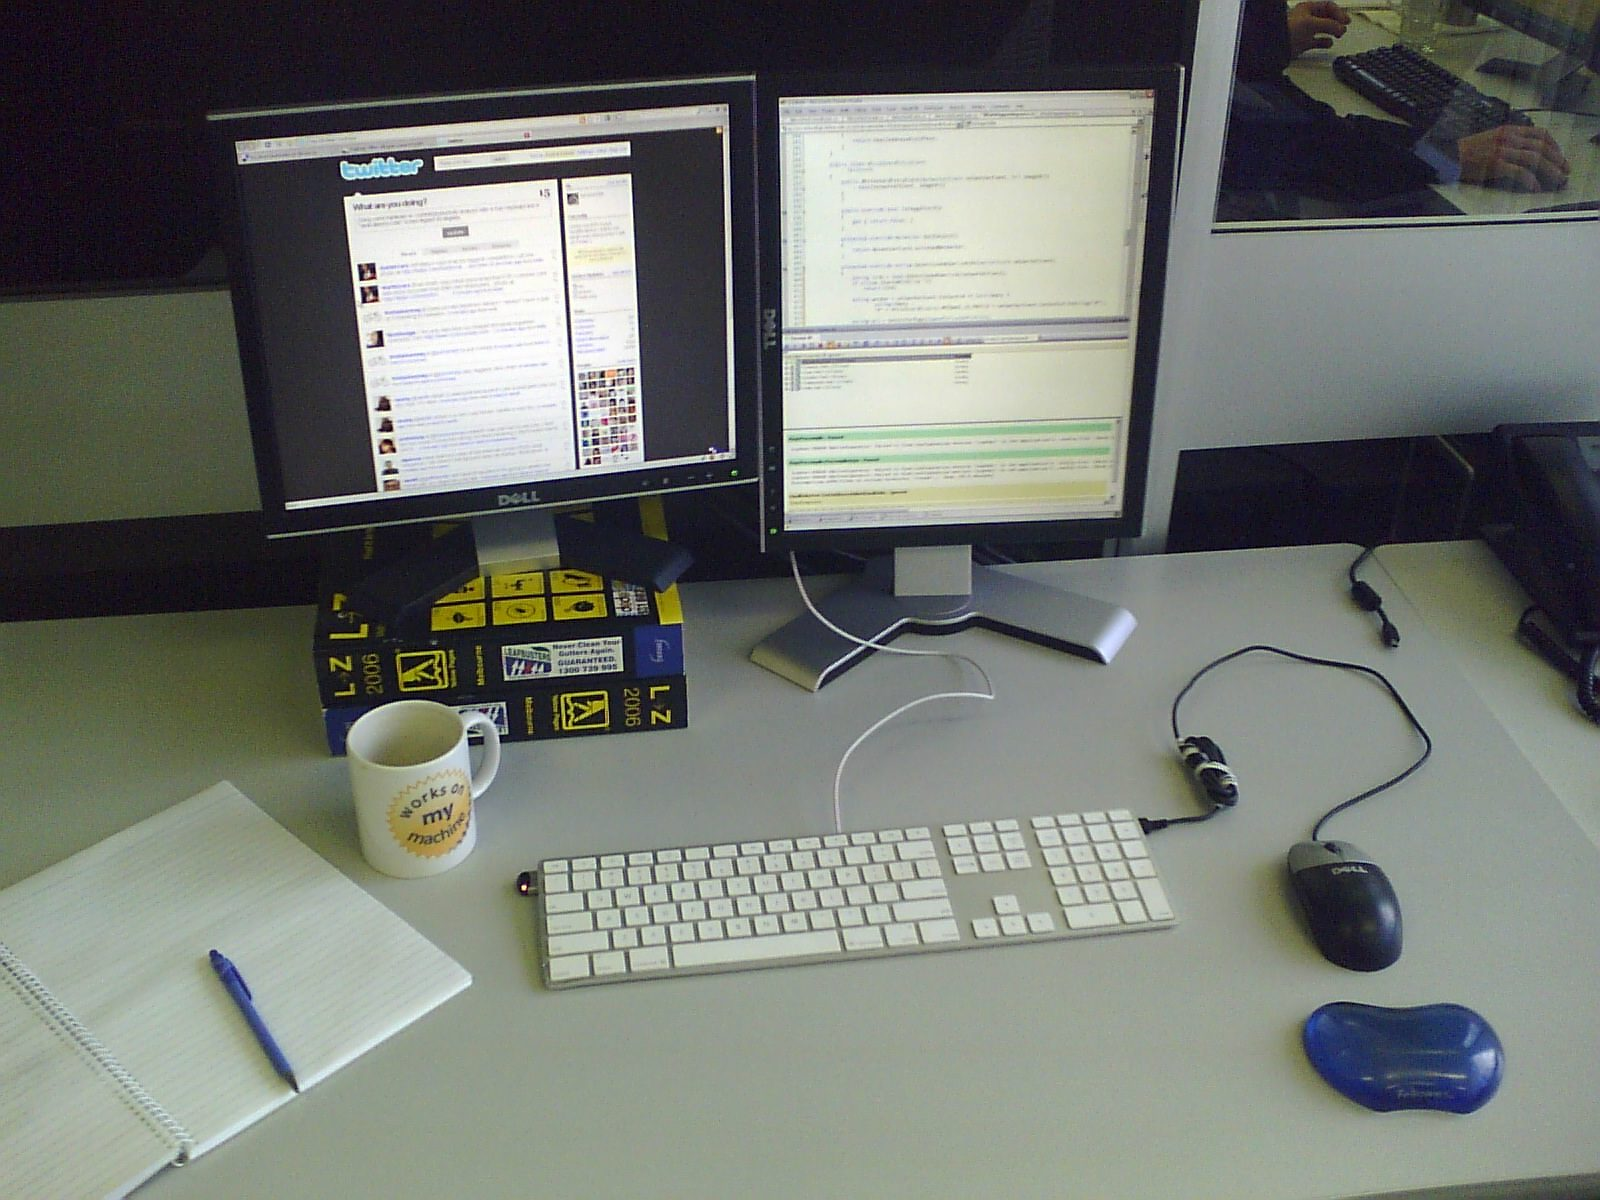 Desk Display of two computers